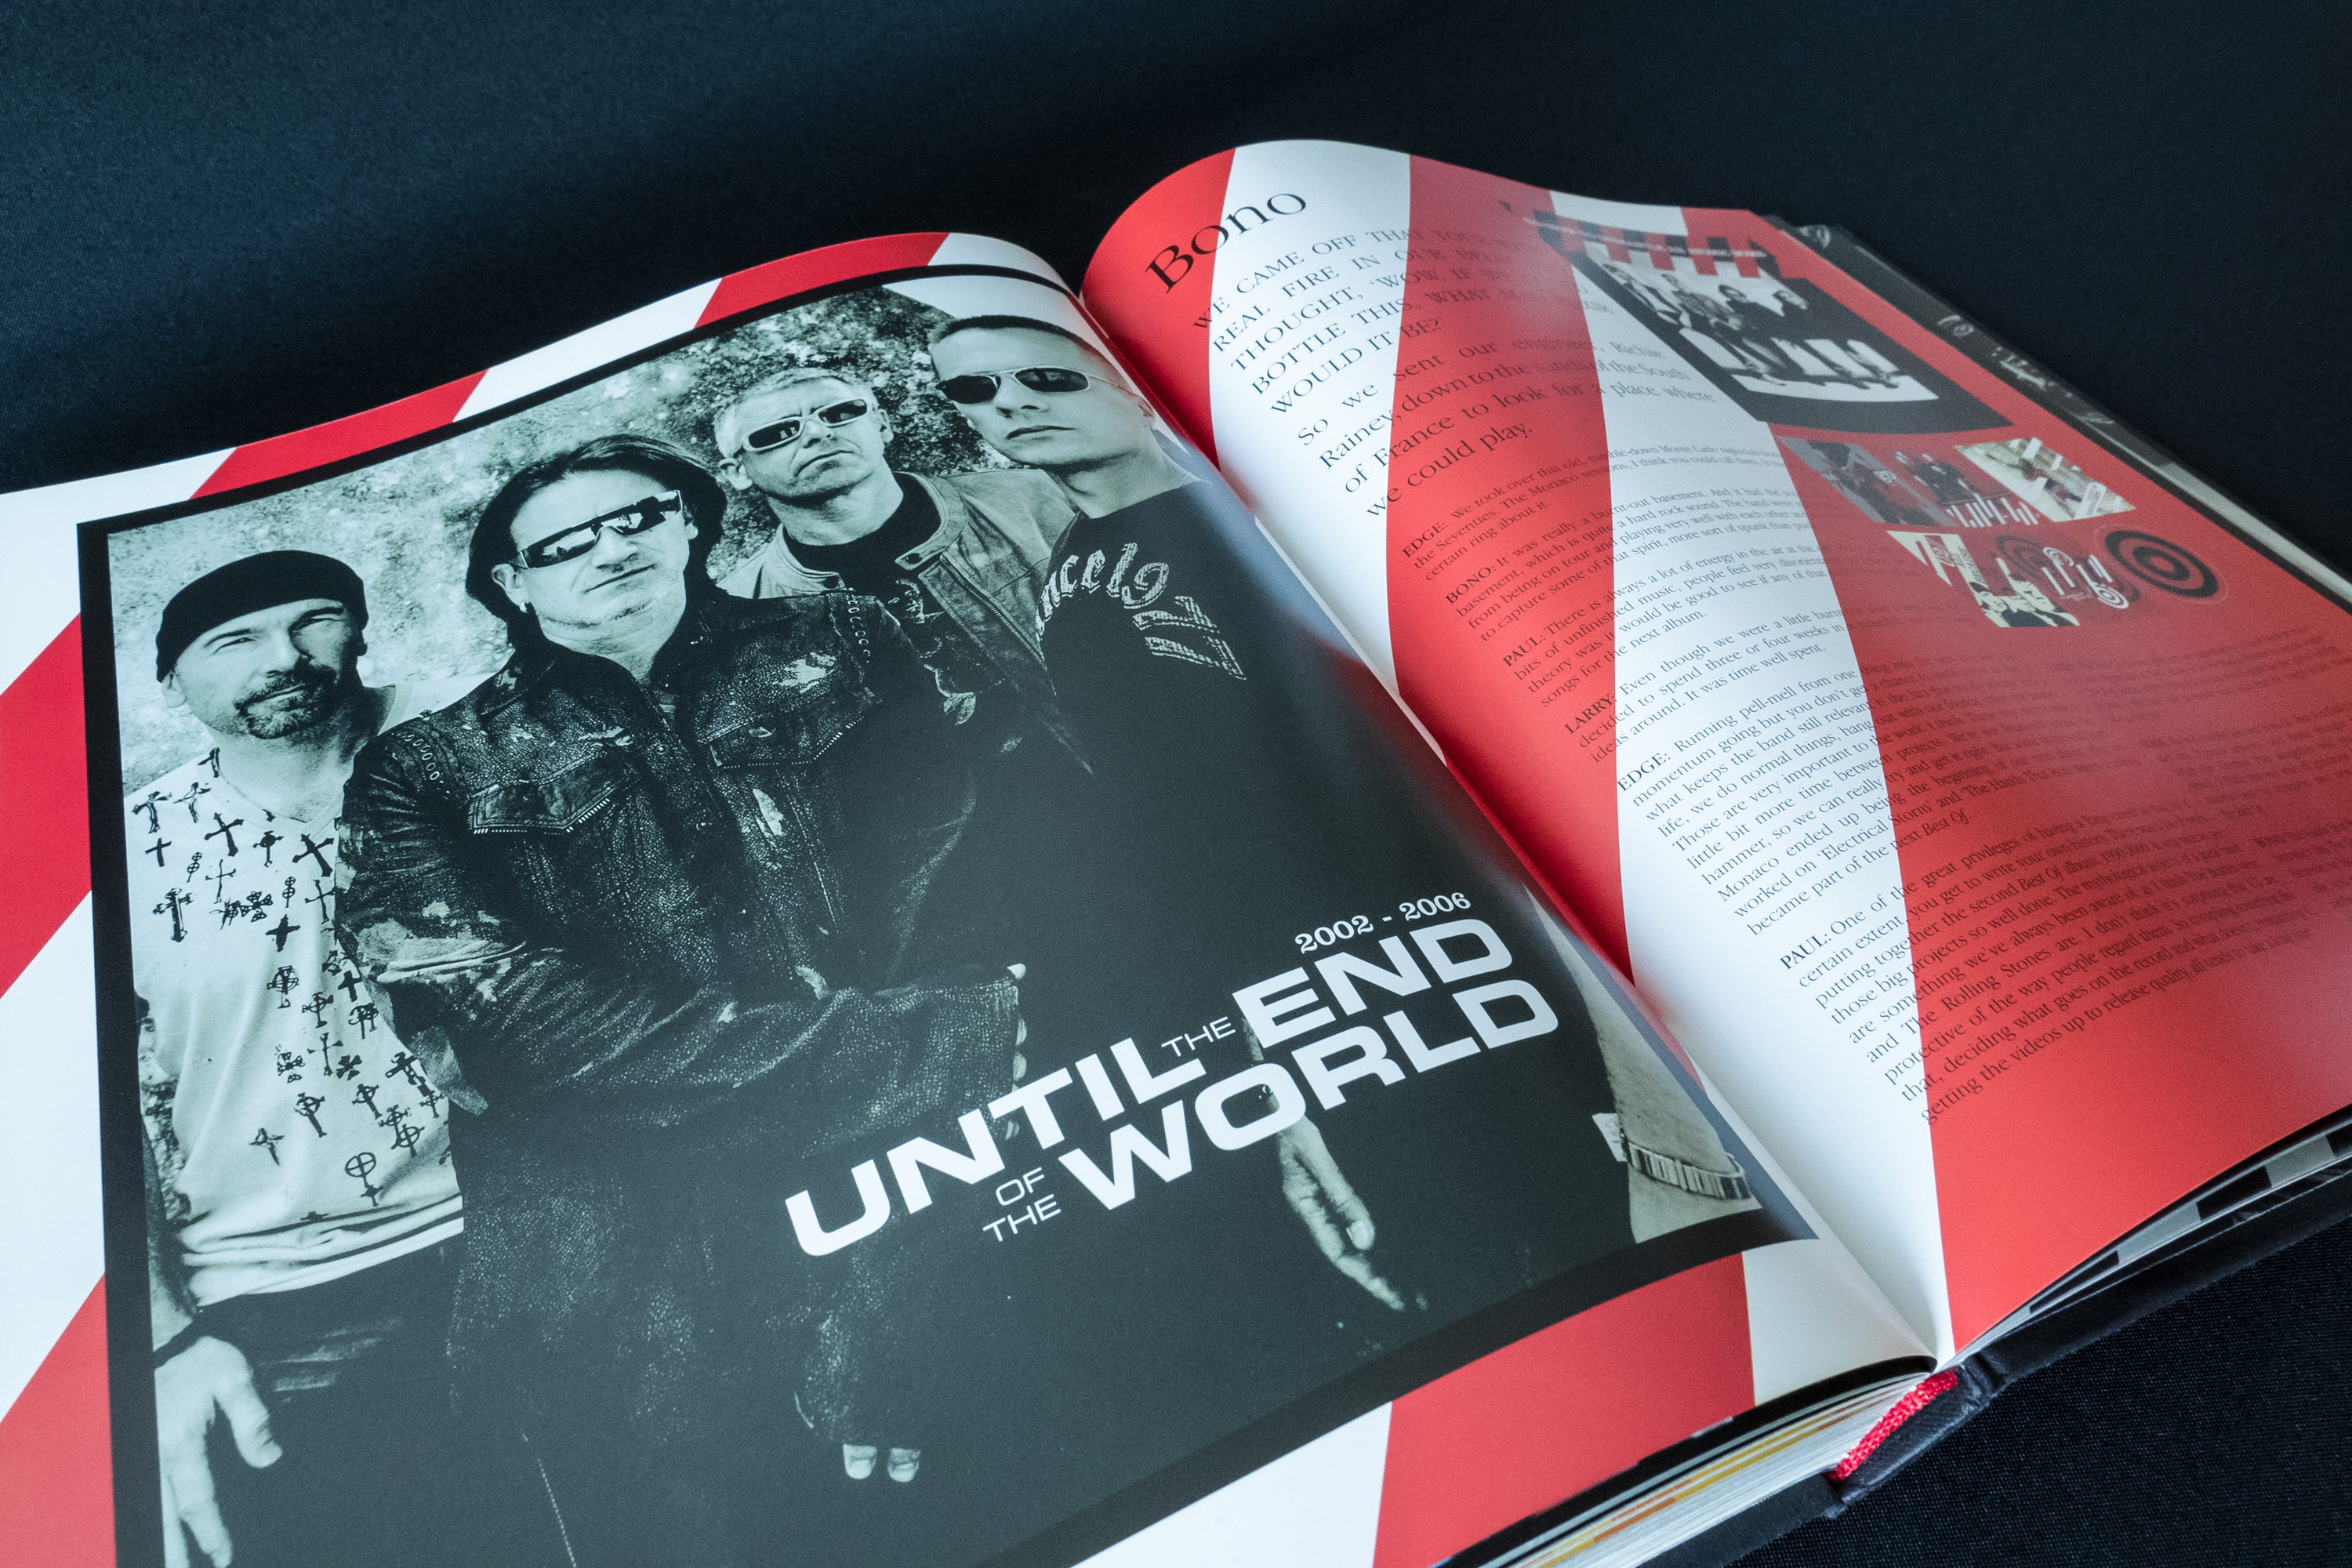 U2 by U2 Book Spread Graphic Design London Dublin 03